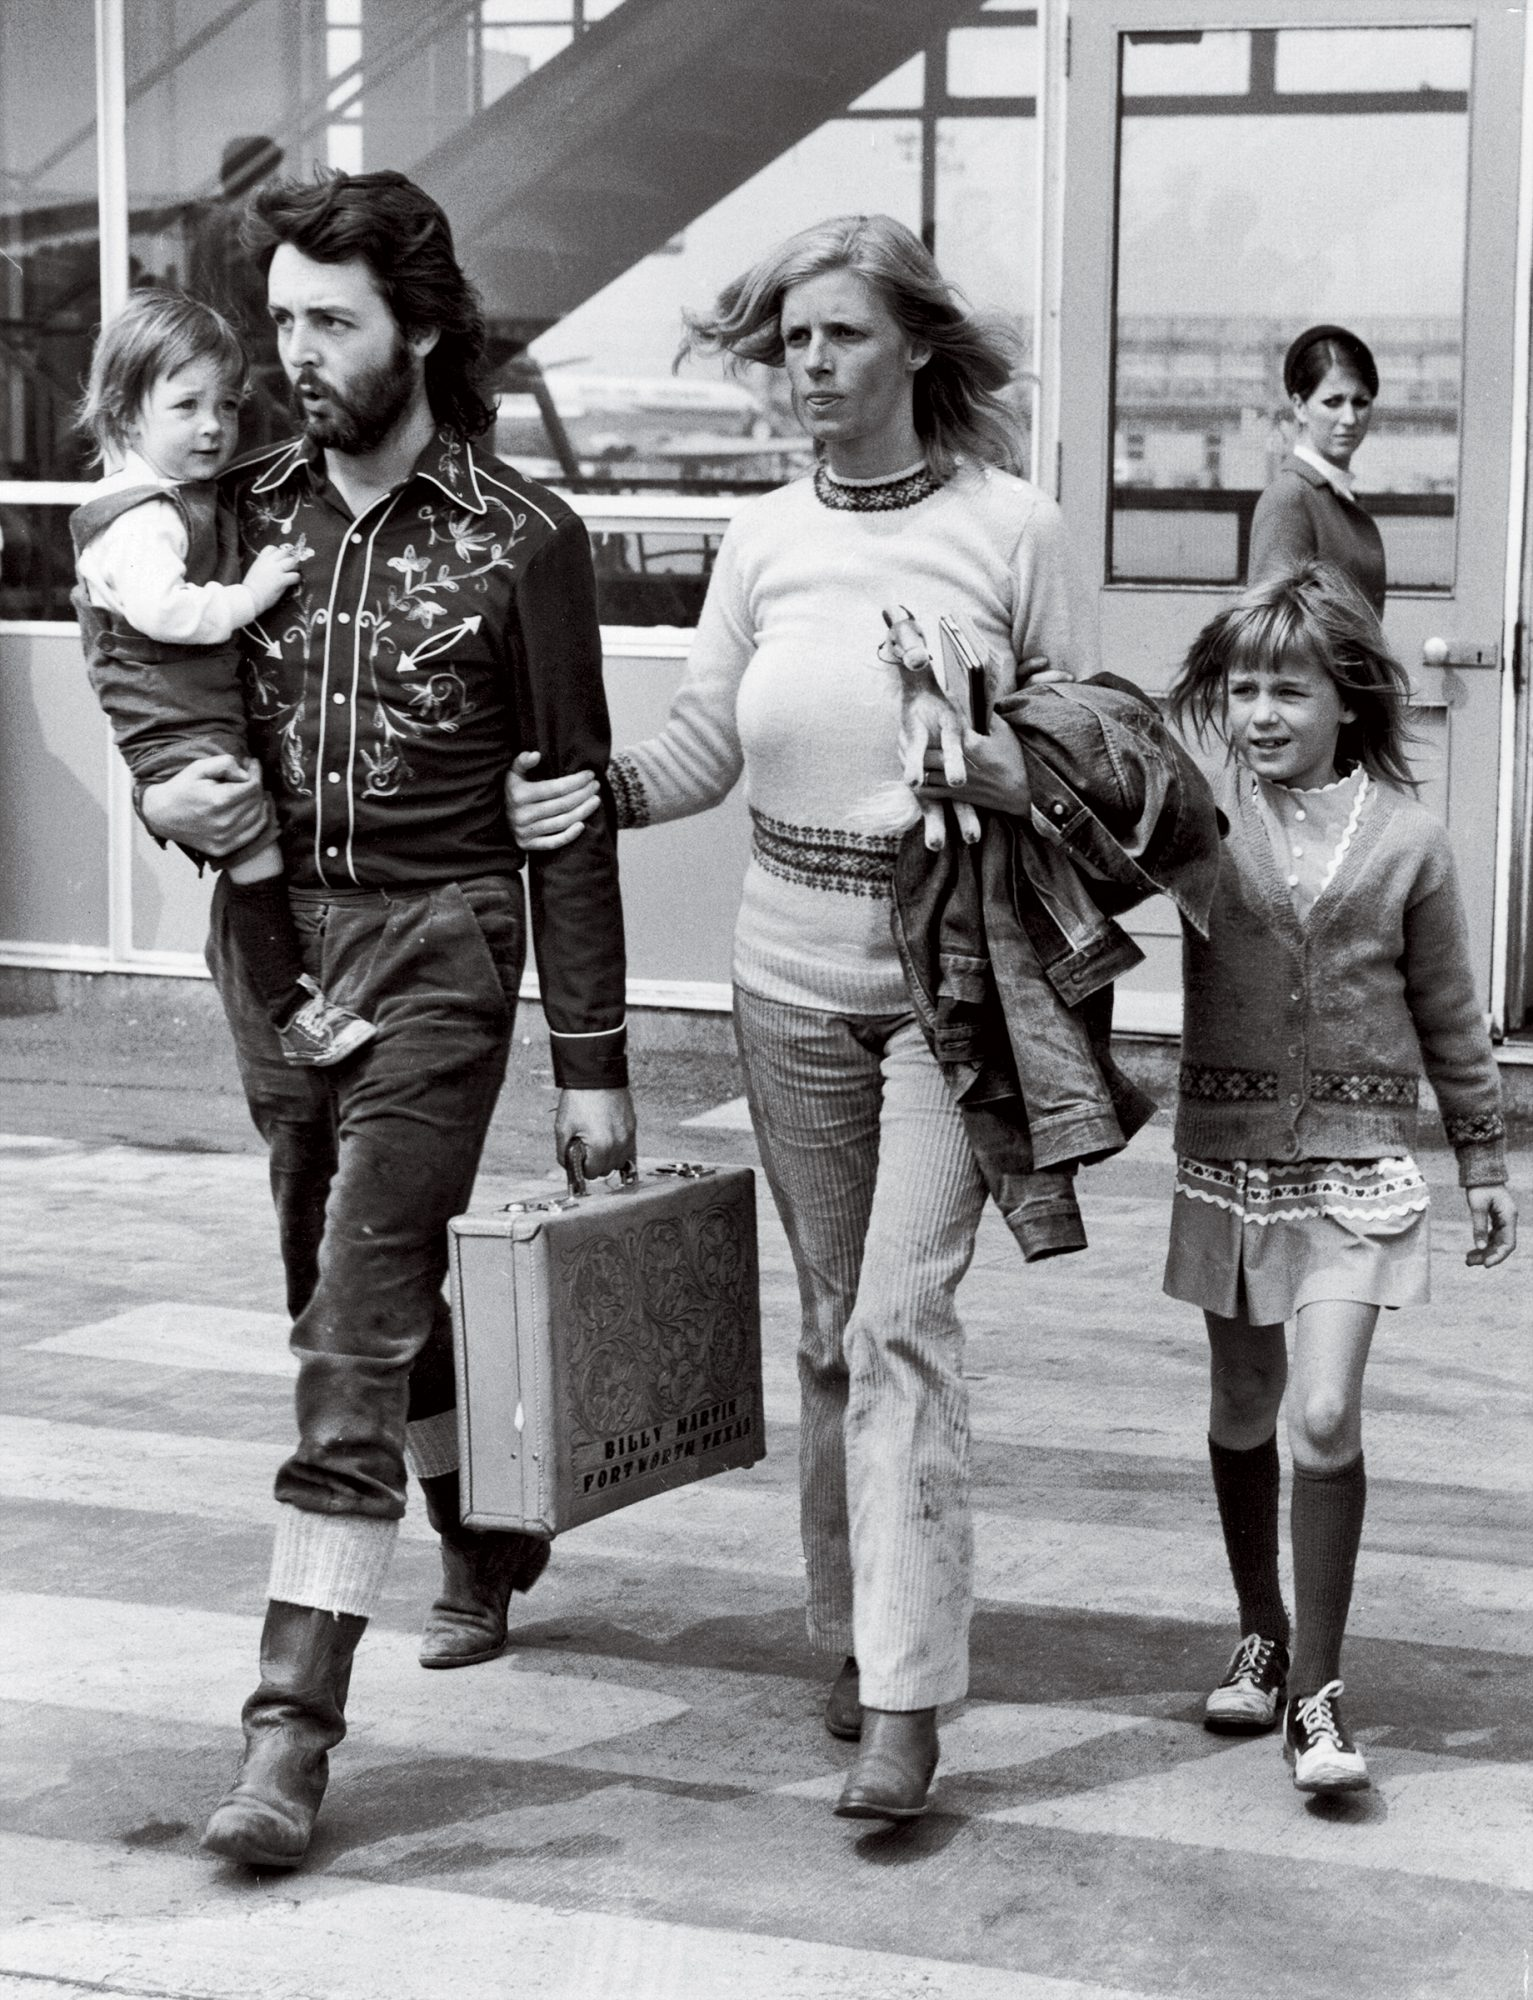 12th May 1971: Paul McCartney, singer, songwriter and bass player for the recently disbanded Beatles, with his wife Linda (1941 - 1998) and their two children, Mary (left) and Heather (right) at Gatwick Airport.